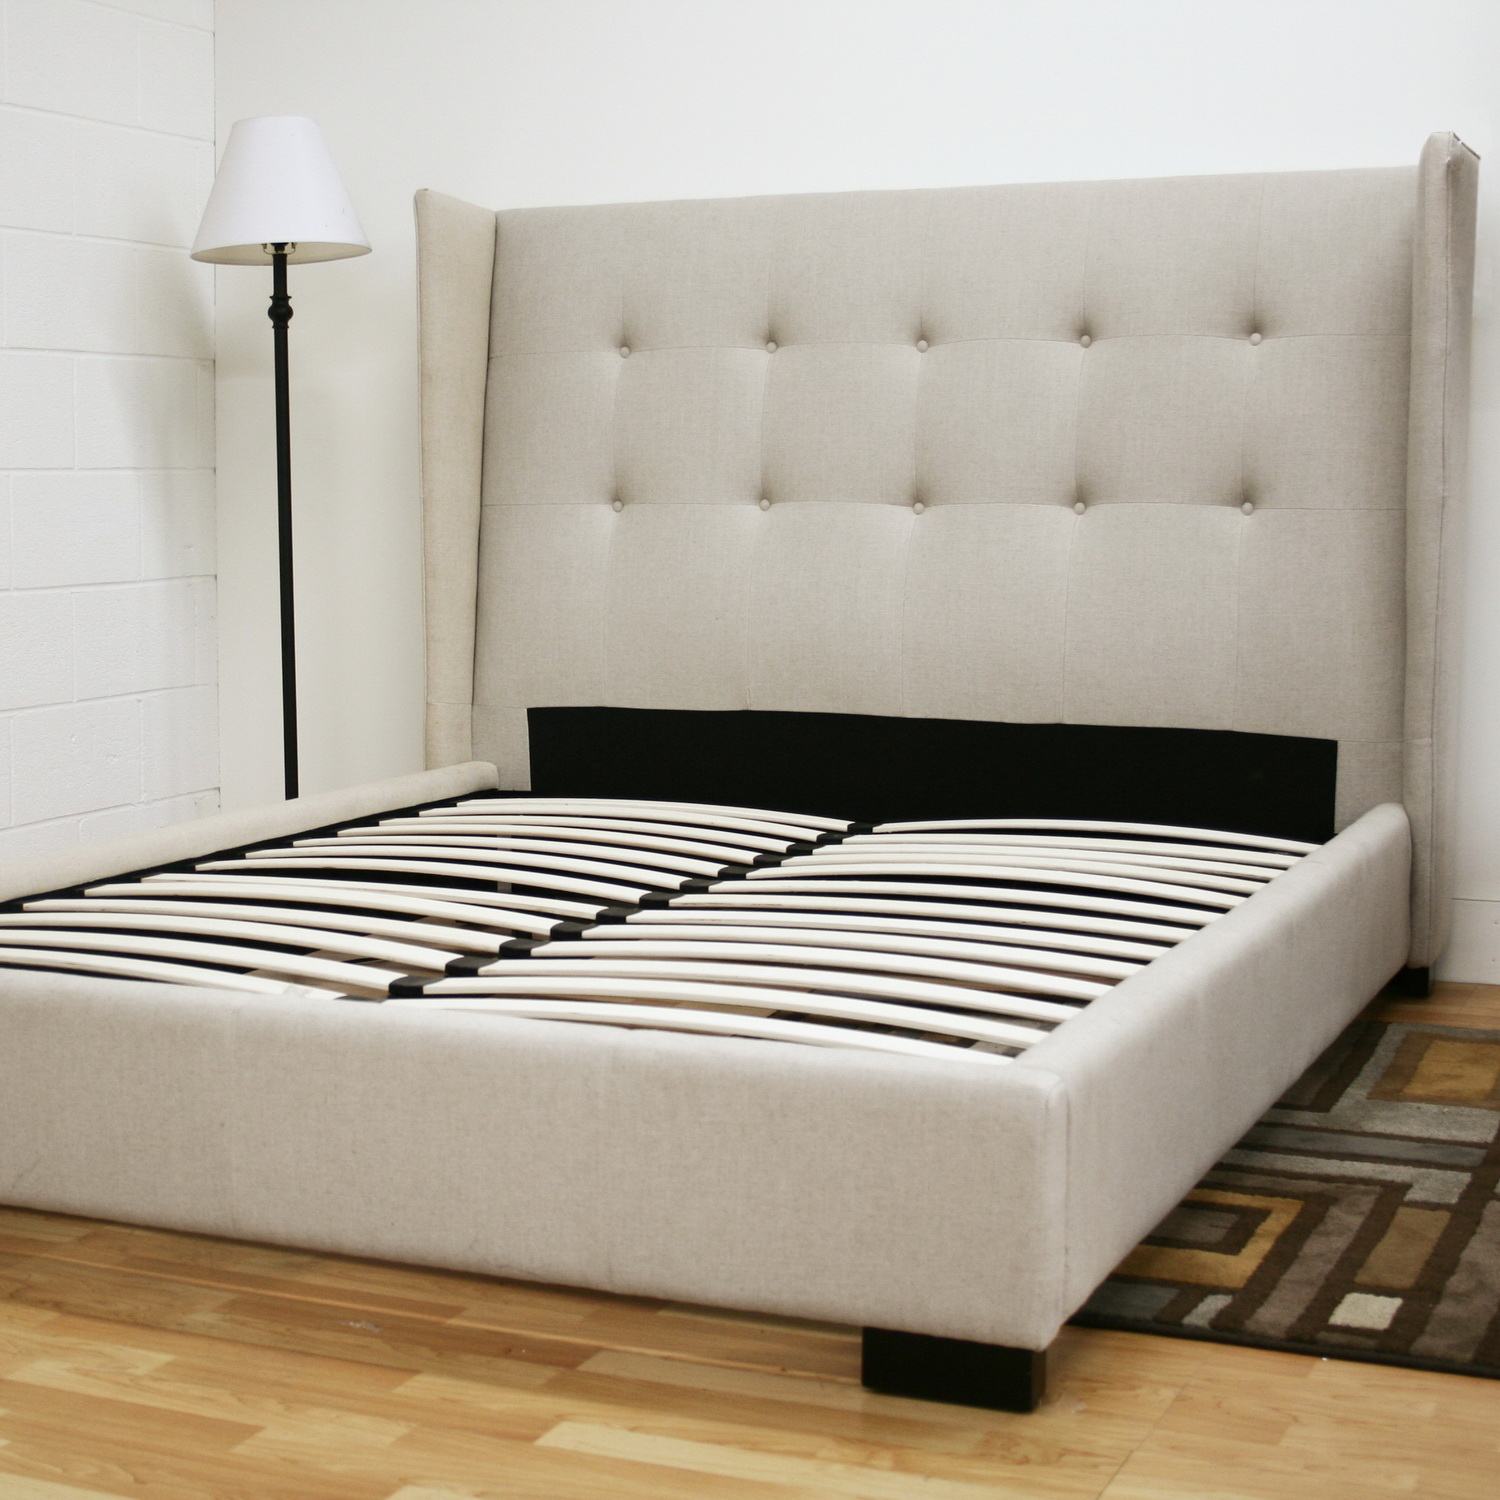 Furniture bedroom furniture bed frame queen size for Queen size bed frame